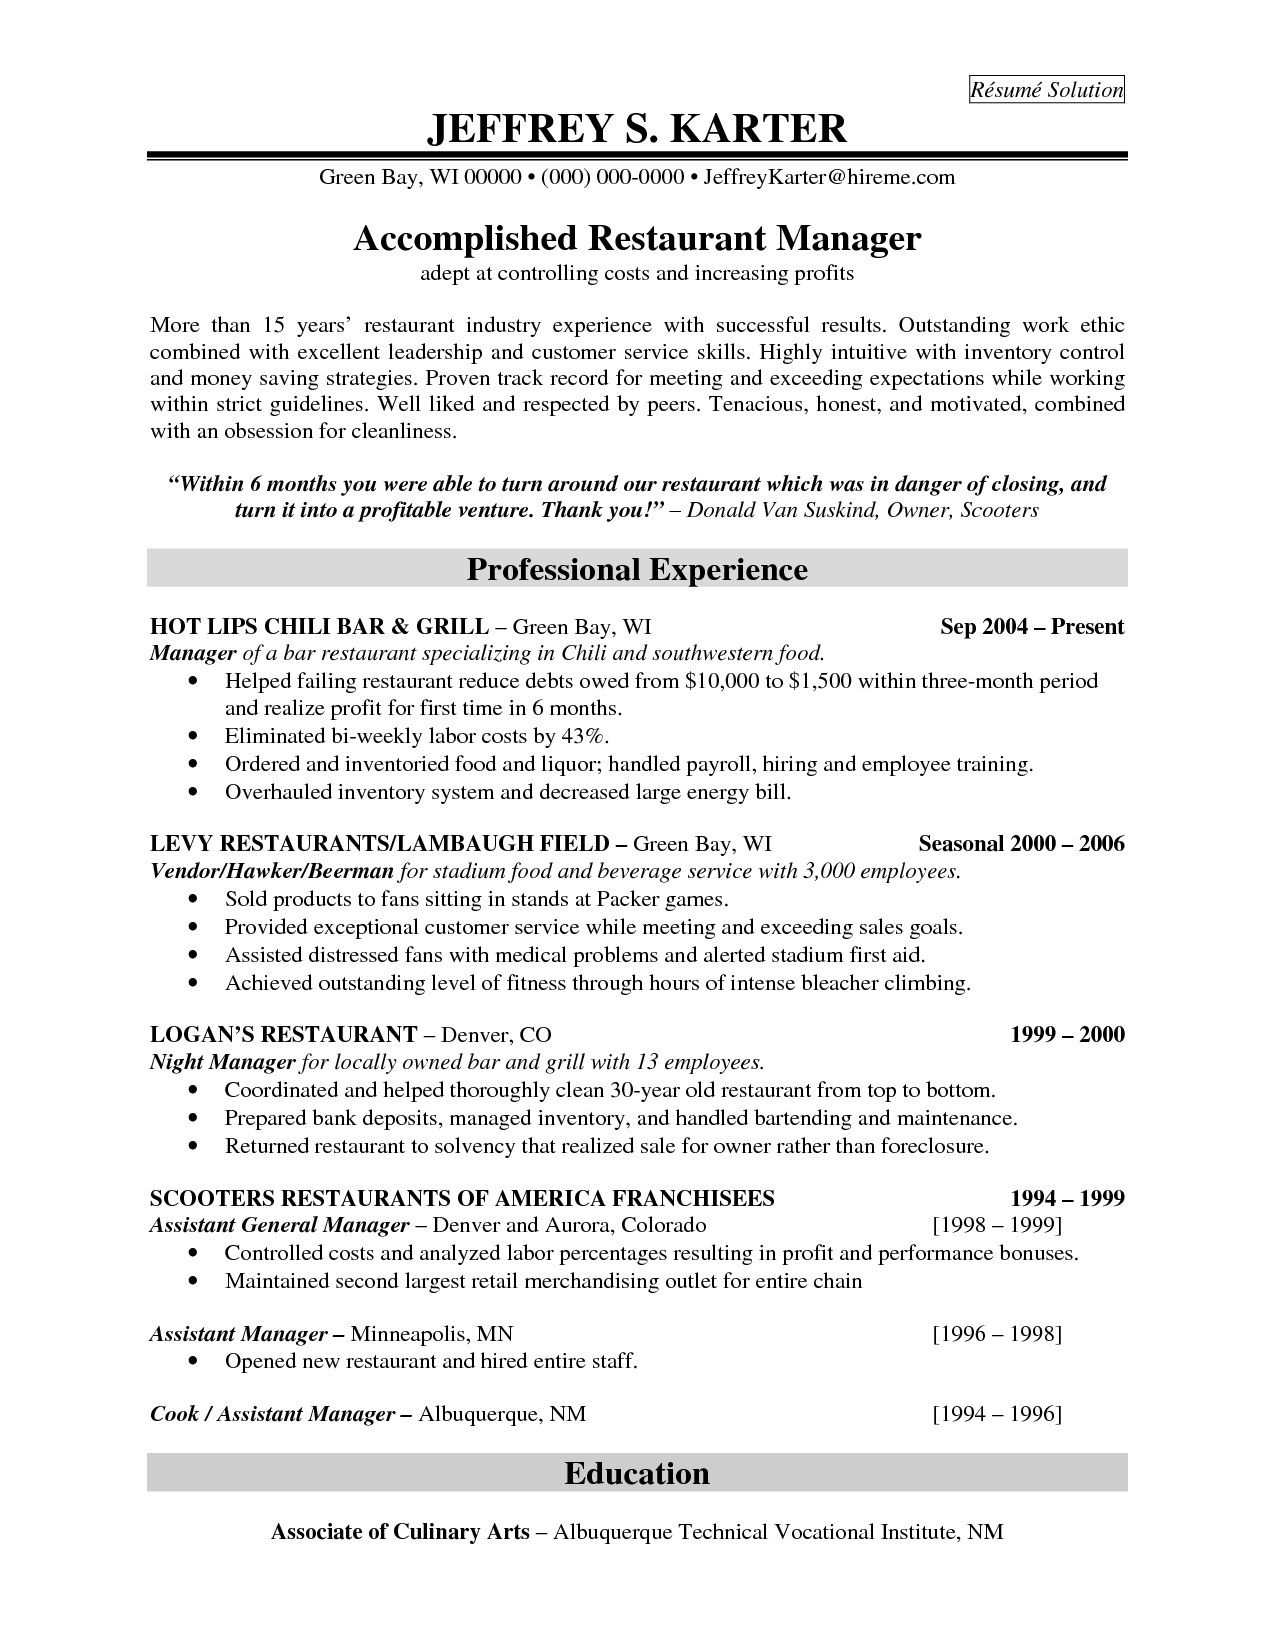 professional experience for accomplidhed restaurant manager resume samples - Restaurant Management Resumes